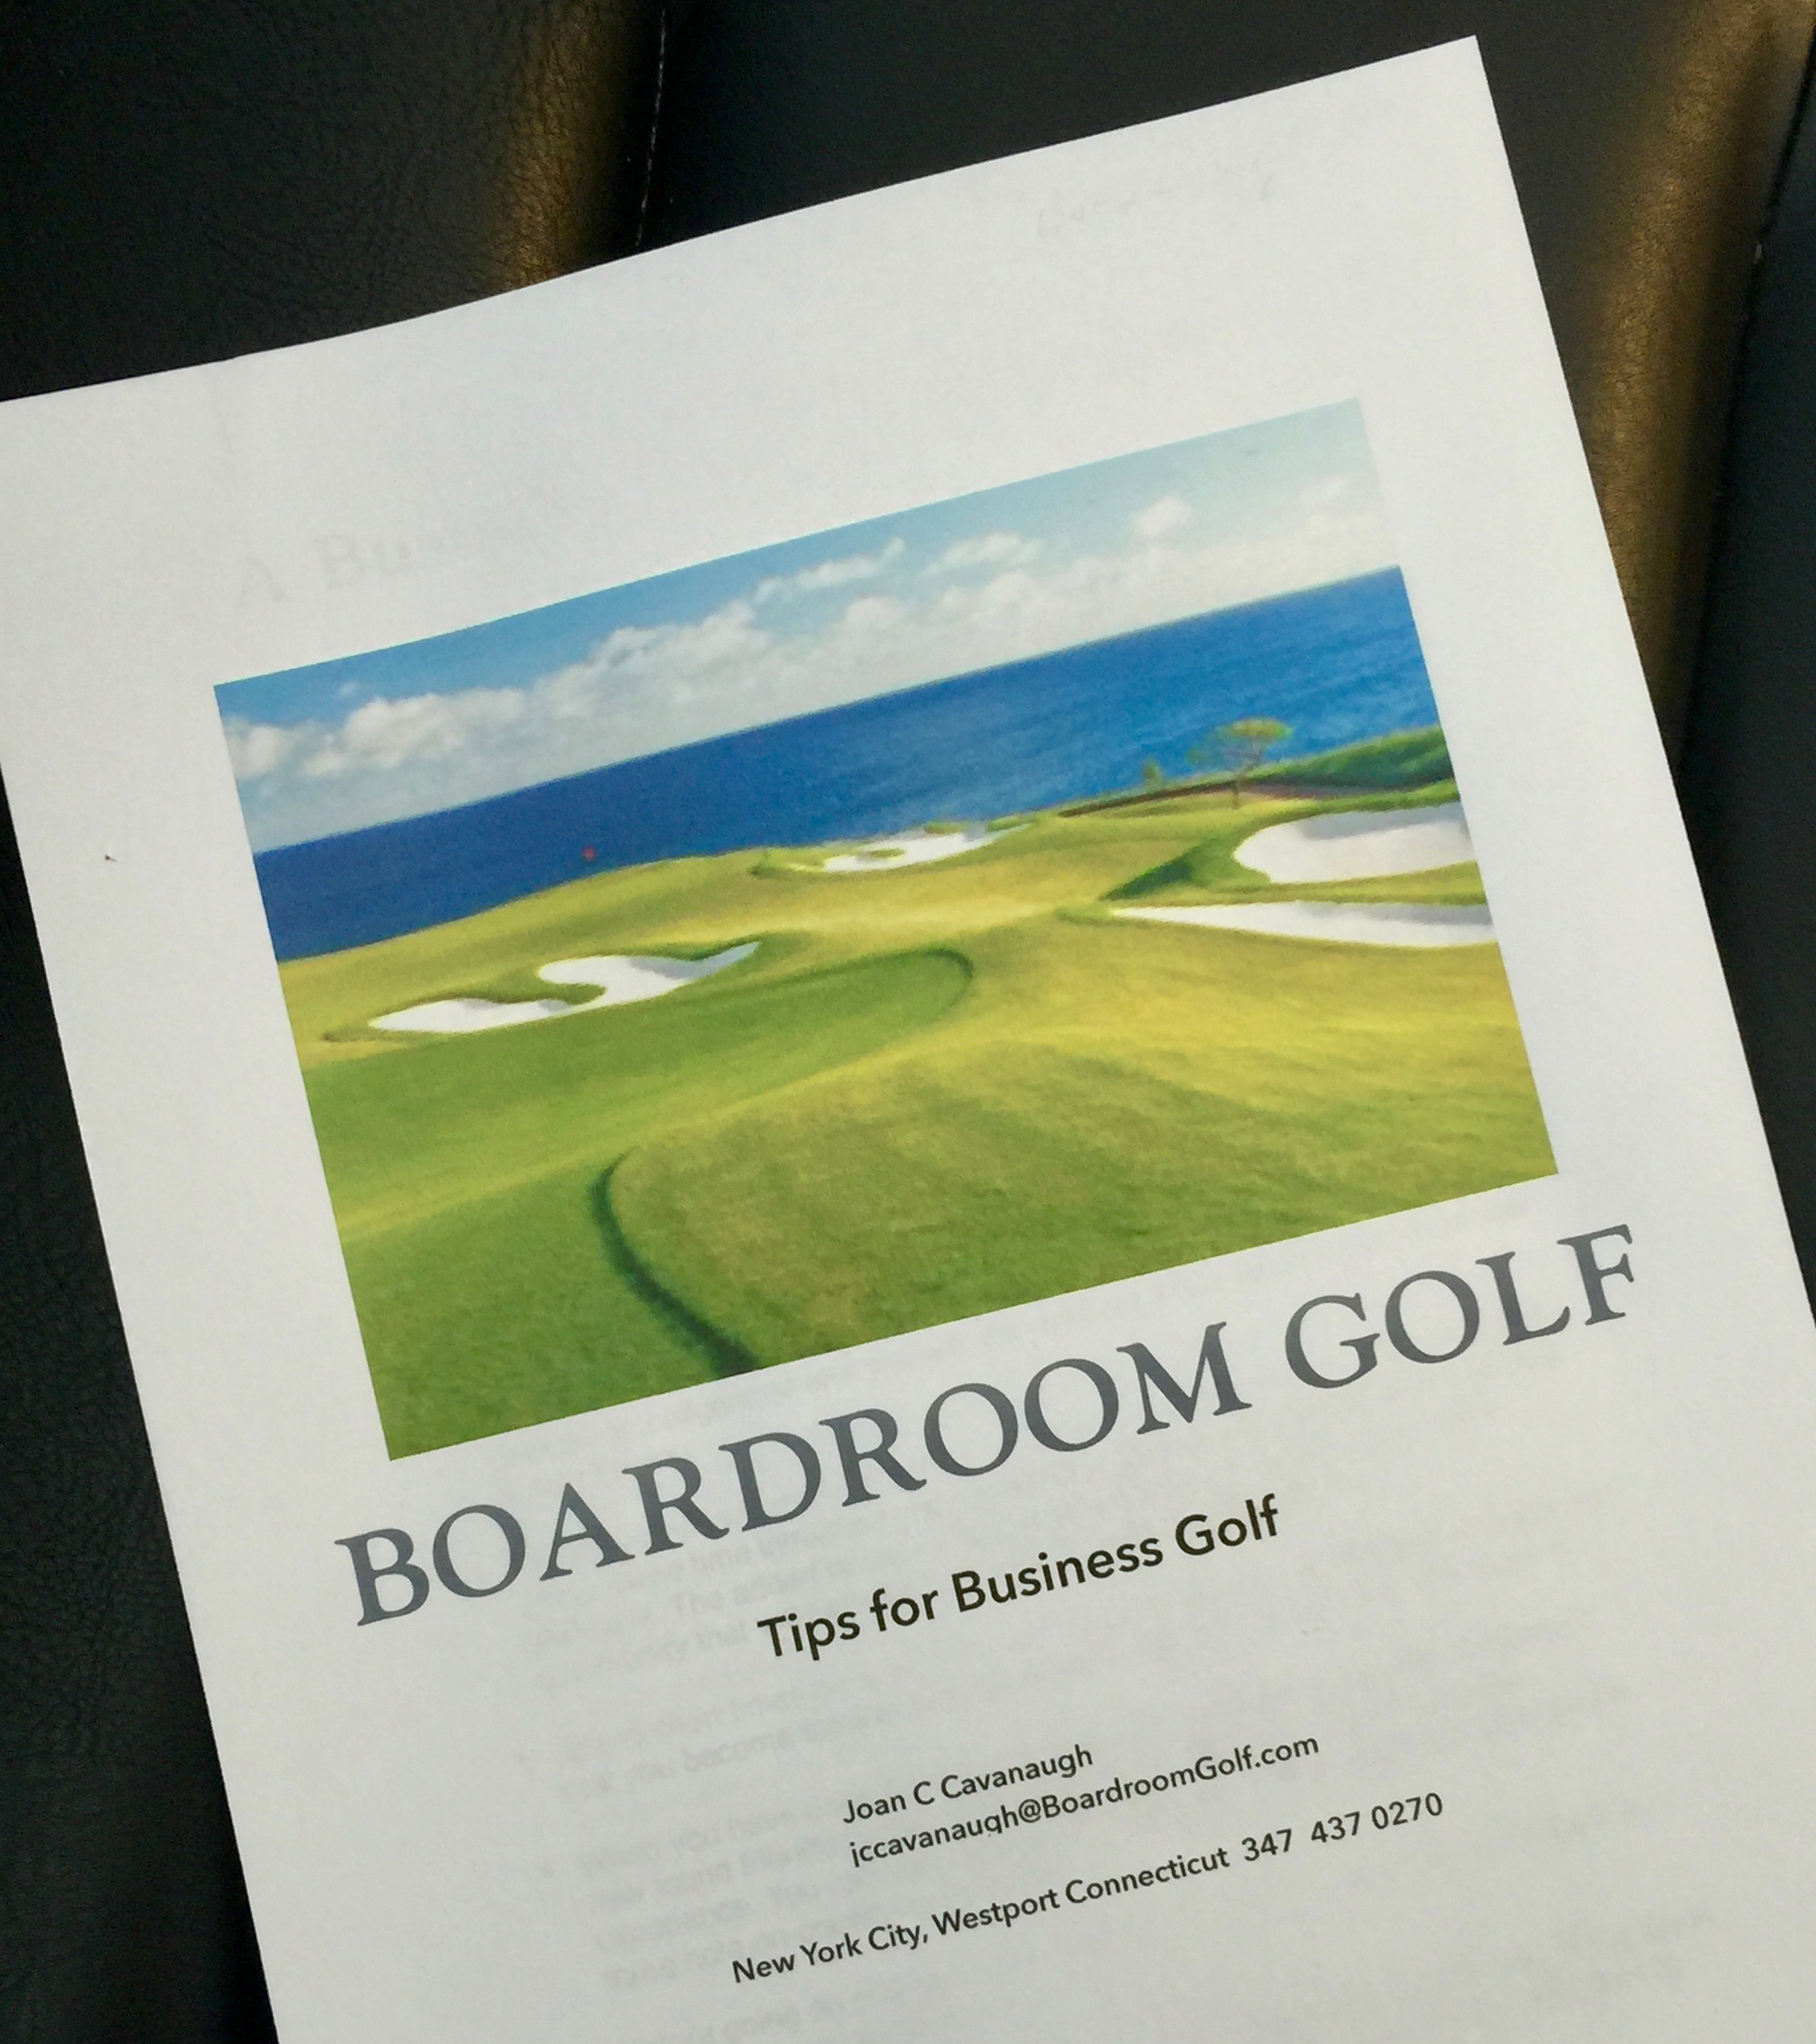 No Note-taking - Get a 20 page manual to golf you can still refer to after the lesson has ended. Compiled over the course of 20 years playing the game, it'll contain all you need to know as you continue your golf adventure.